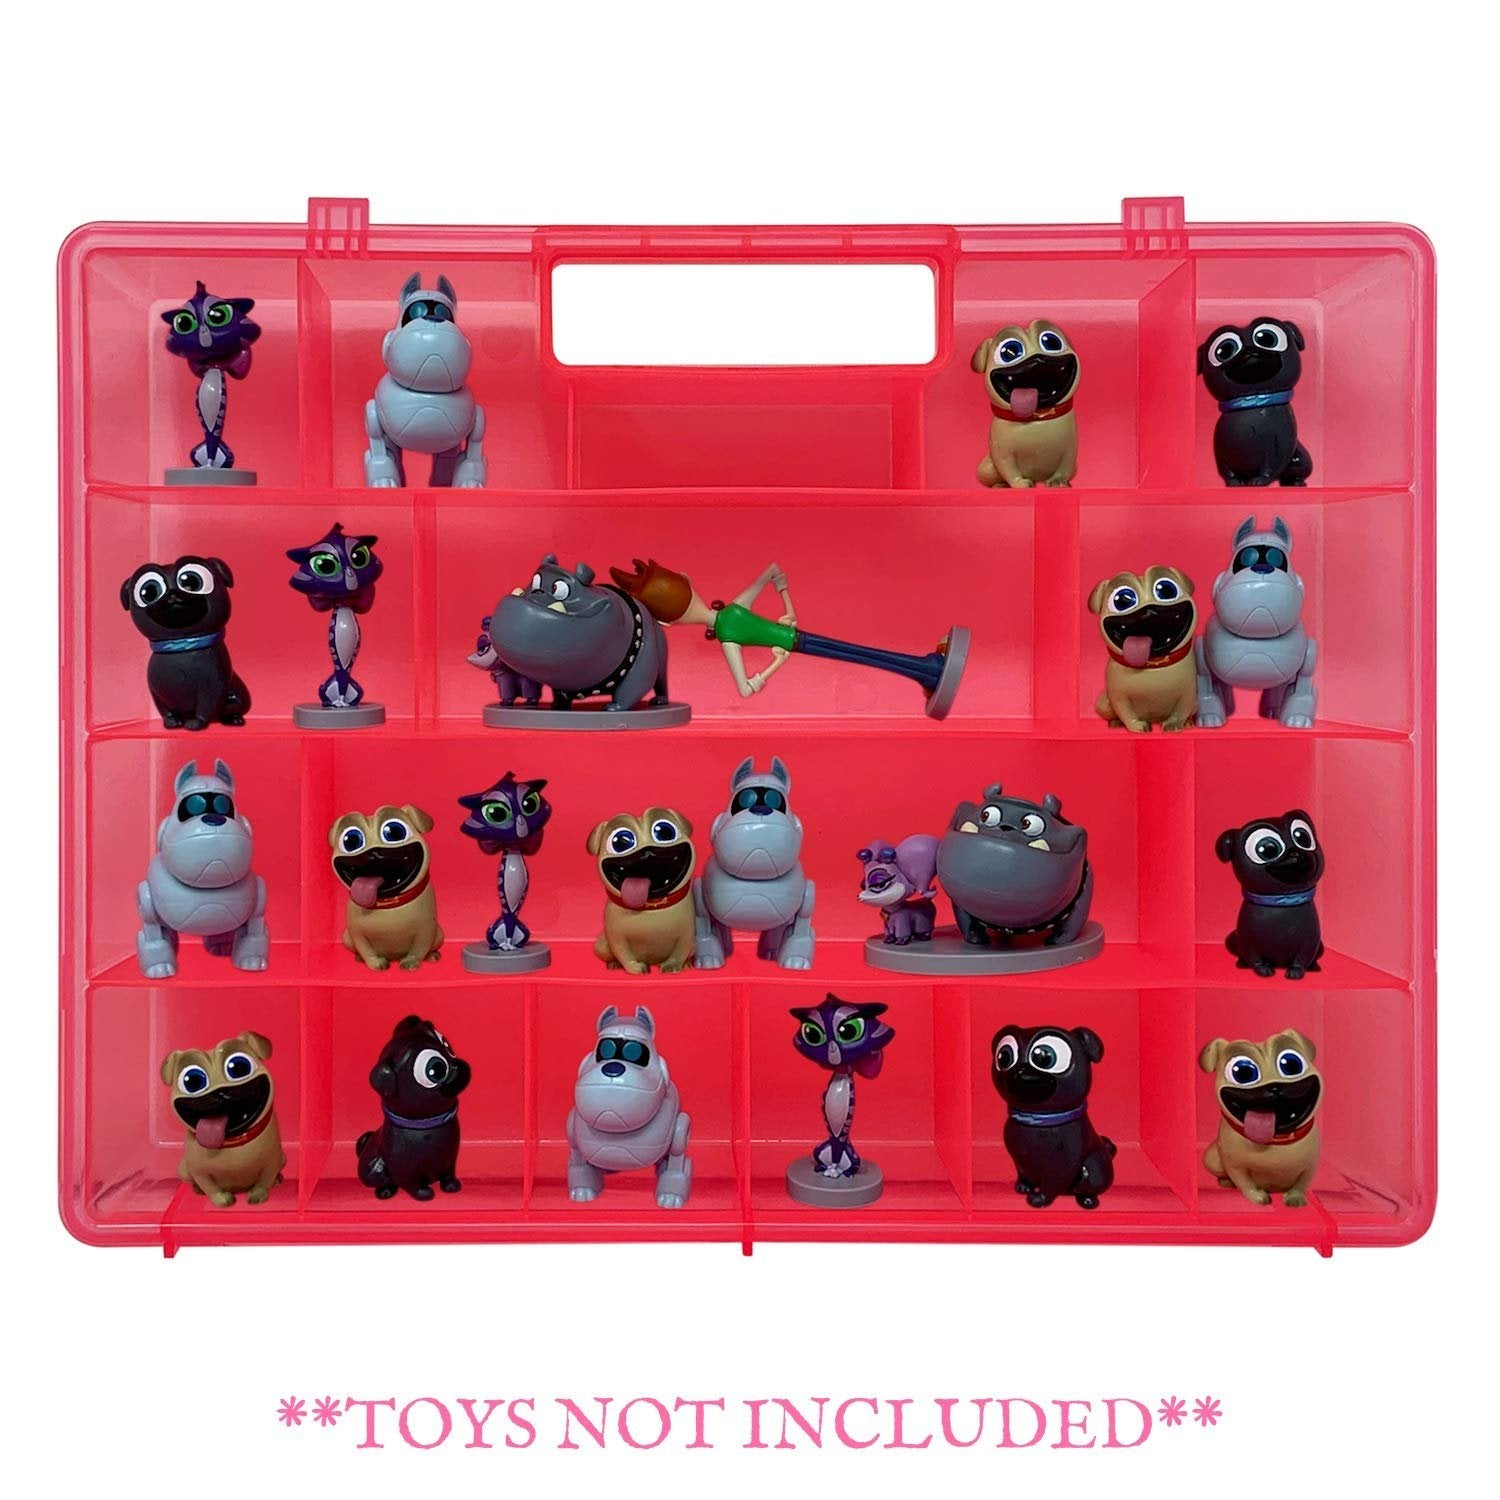 Life Made Better Durable, Sturdy Toy Organizer Case Compatible with Junior Puppy Dog PalsFigures - Kid Toys Accessory Case, not Made by Junior Puppy Dog Pals